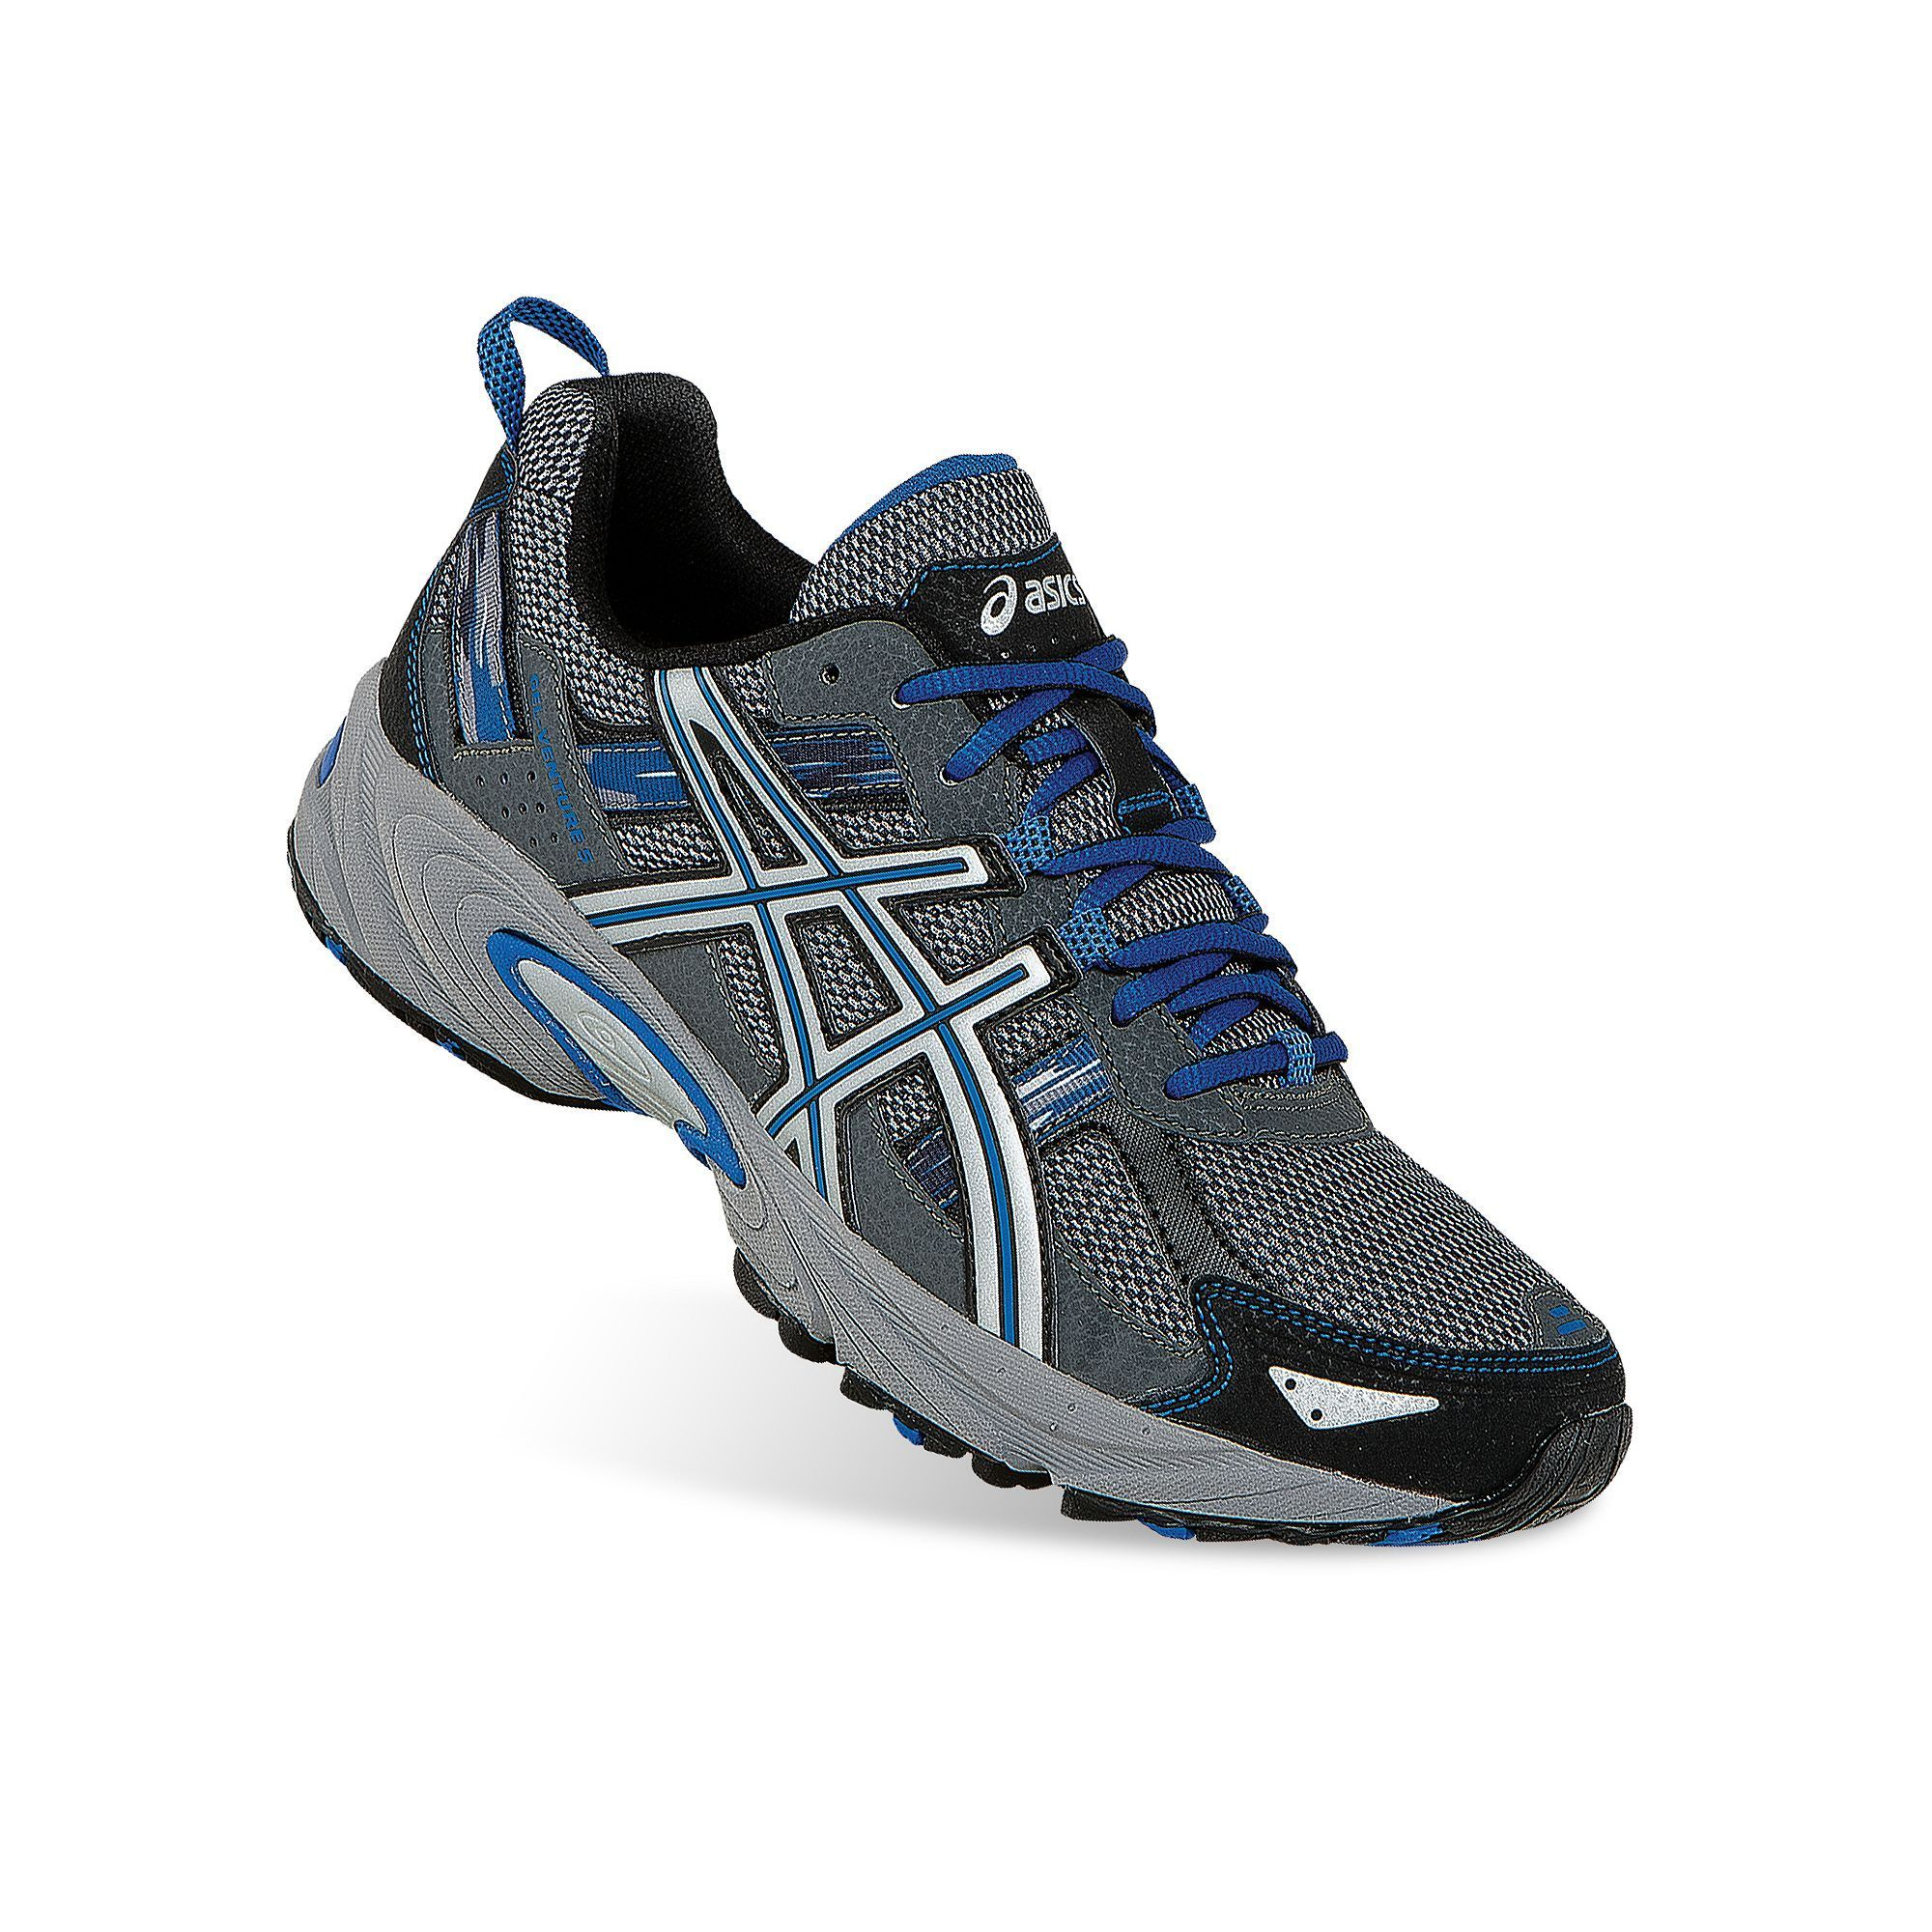 3fee04aeac ASICS GEL-Venture 5 Men's Trail Running Shoes | Products | Running ...